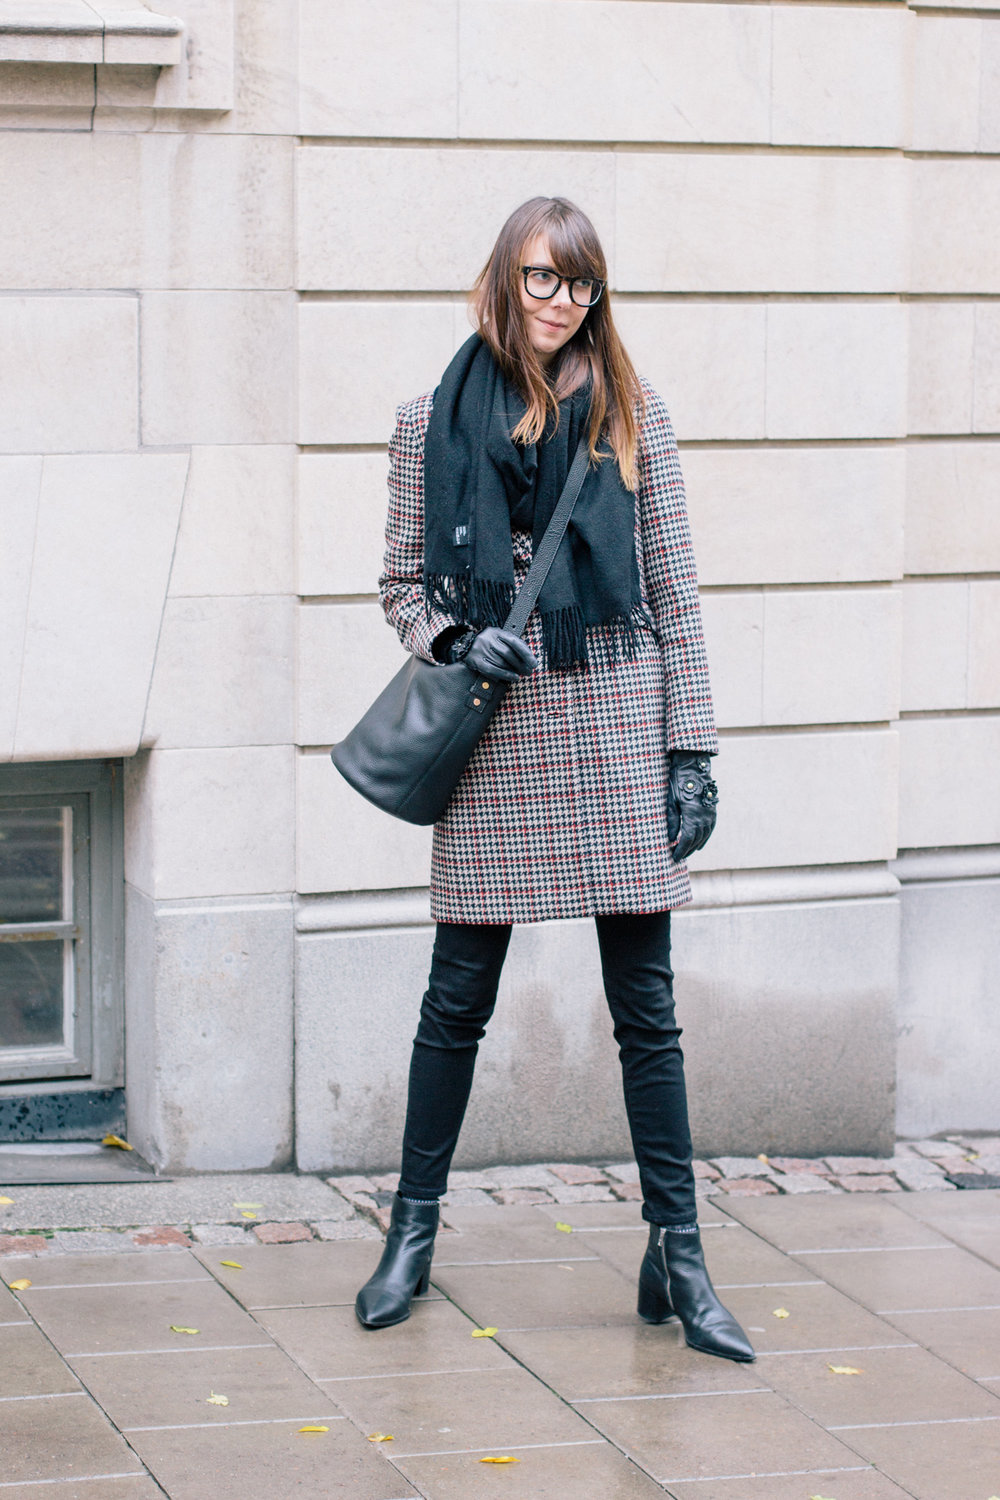 Look 3: Cold Weather Casual -